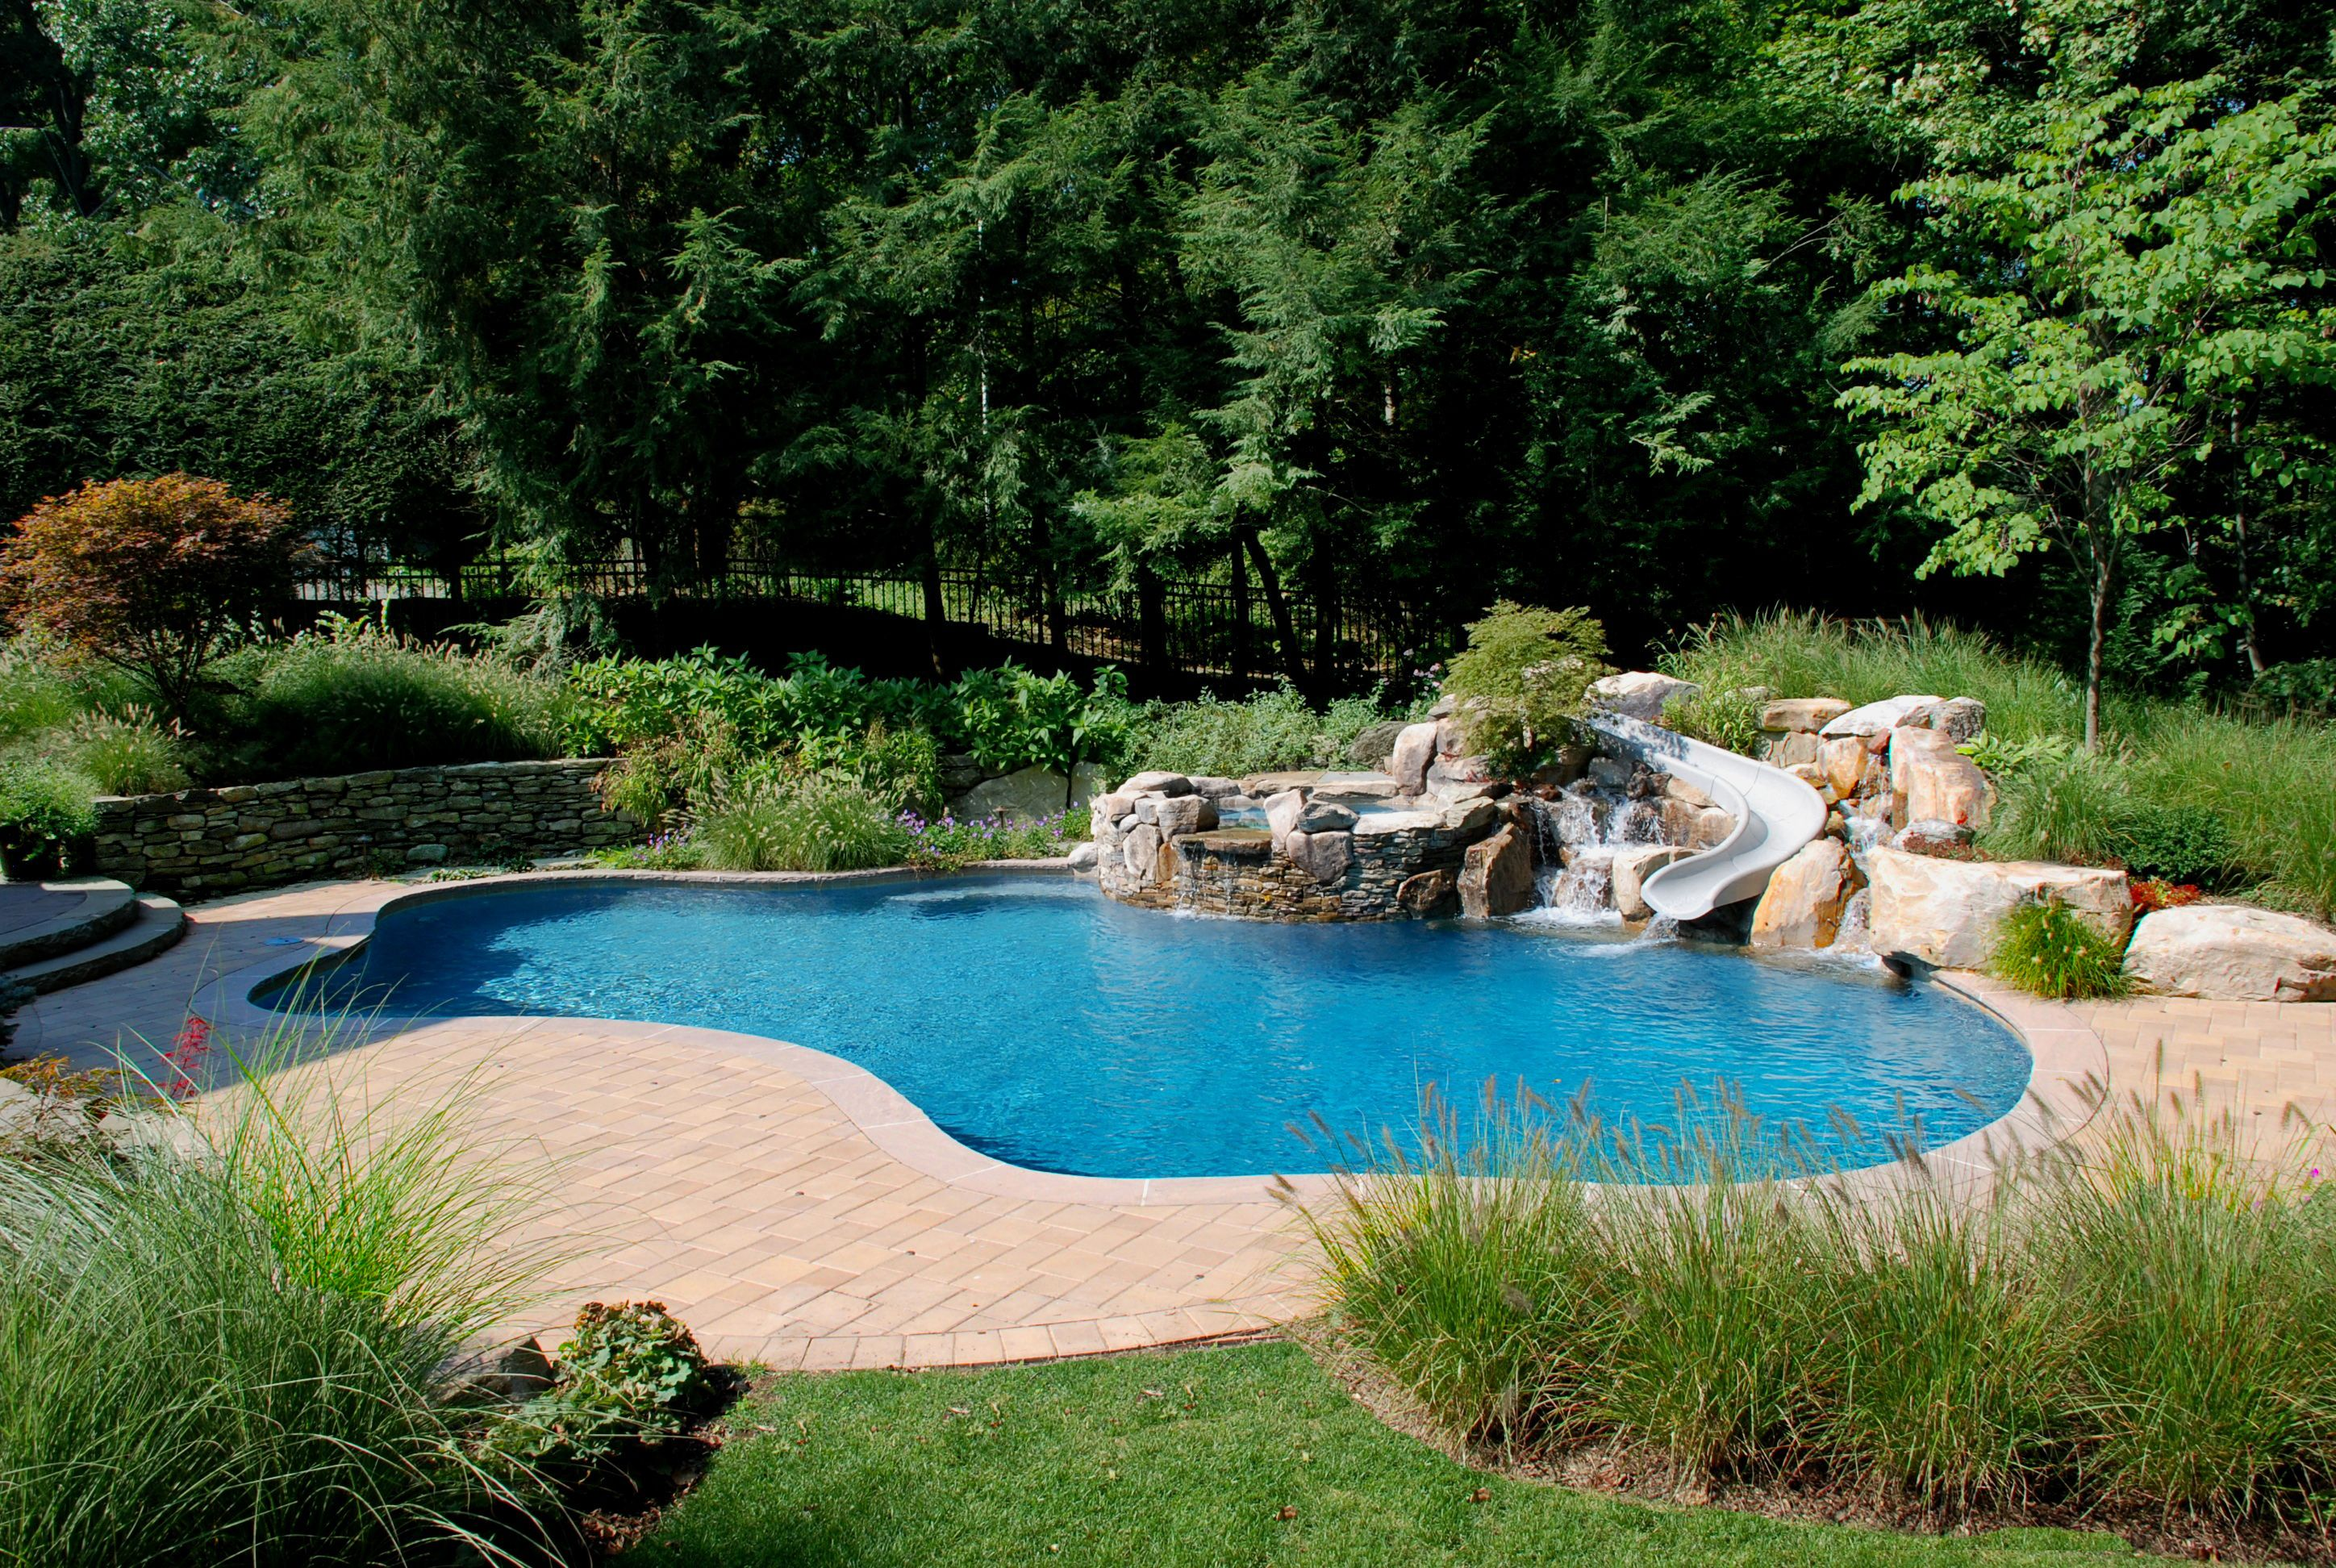 Freeform swimming pool design, wish this was your pool ... |Small Freeform Pools With Waterfalls